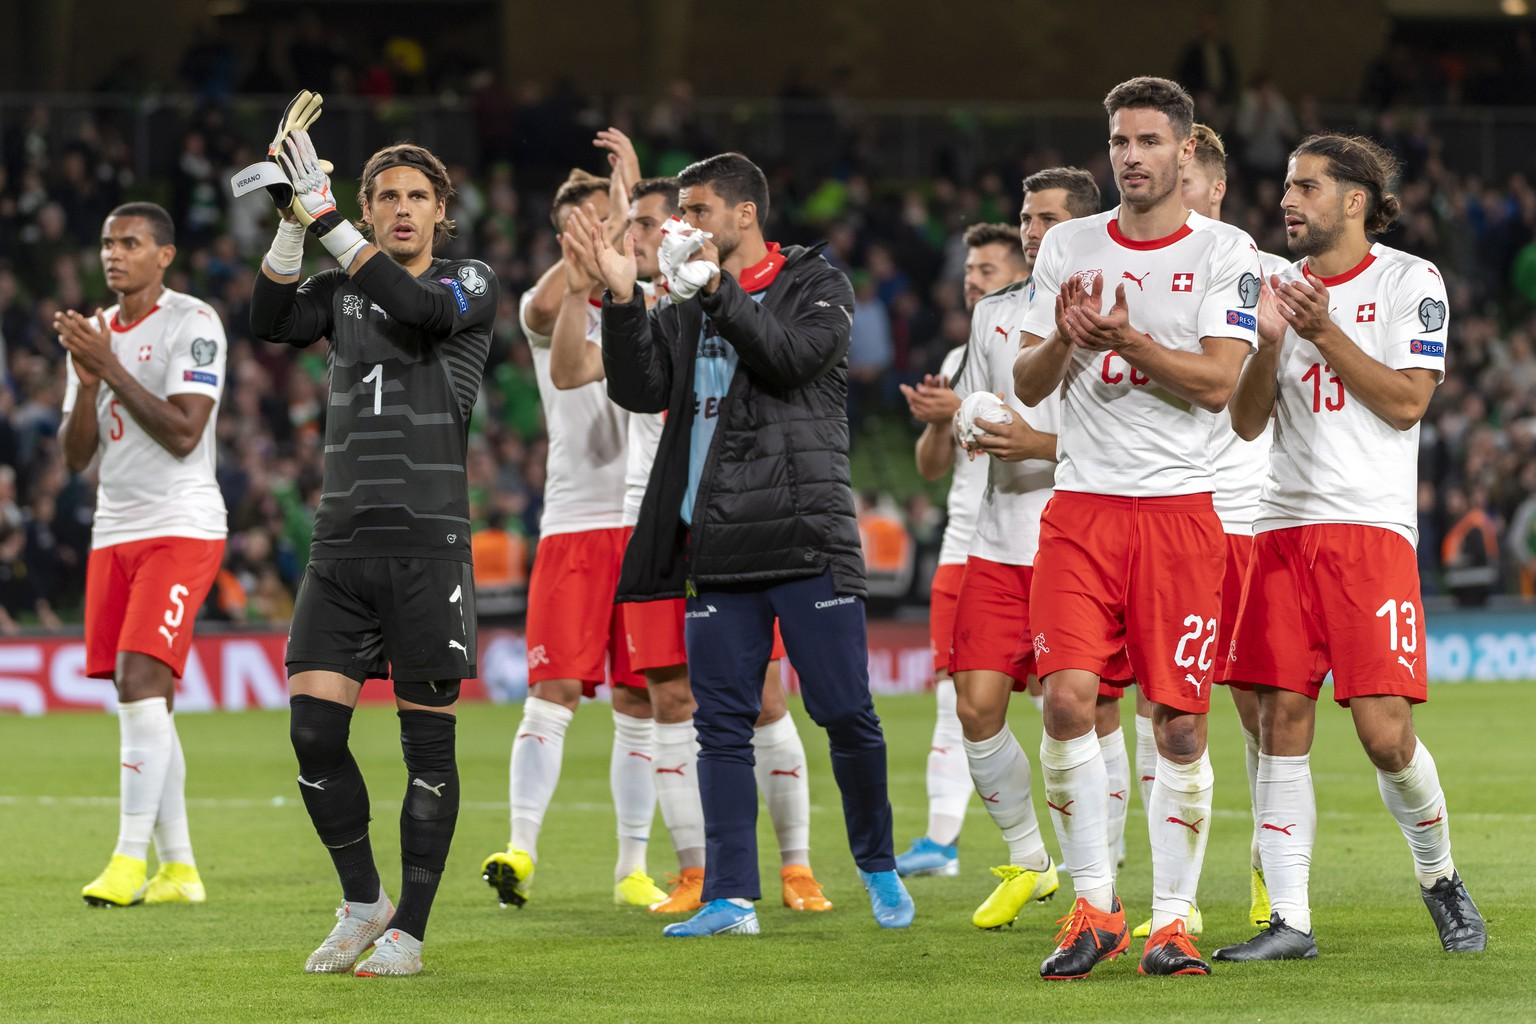 epa07820991 Switzerland's players thank their fans after the UEFA Euro 2020 qualifying Group D soccer match between Ireland and Switzerland at the Aviva stadium in Dublin, Ireland, 05 September 2019.  EPA/GEORGIOS KEFALAS